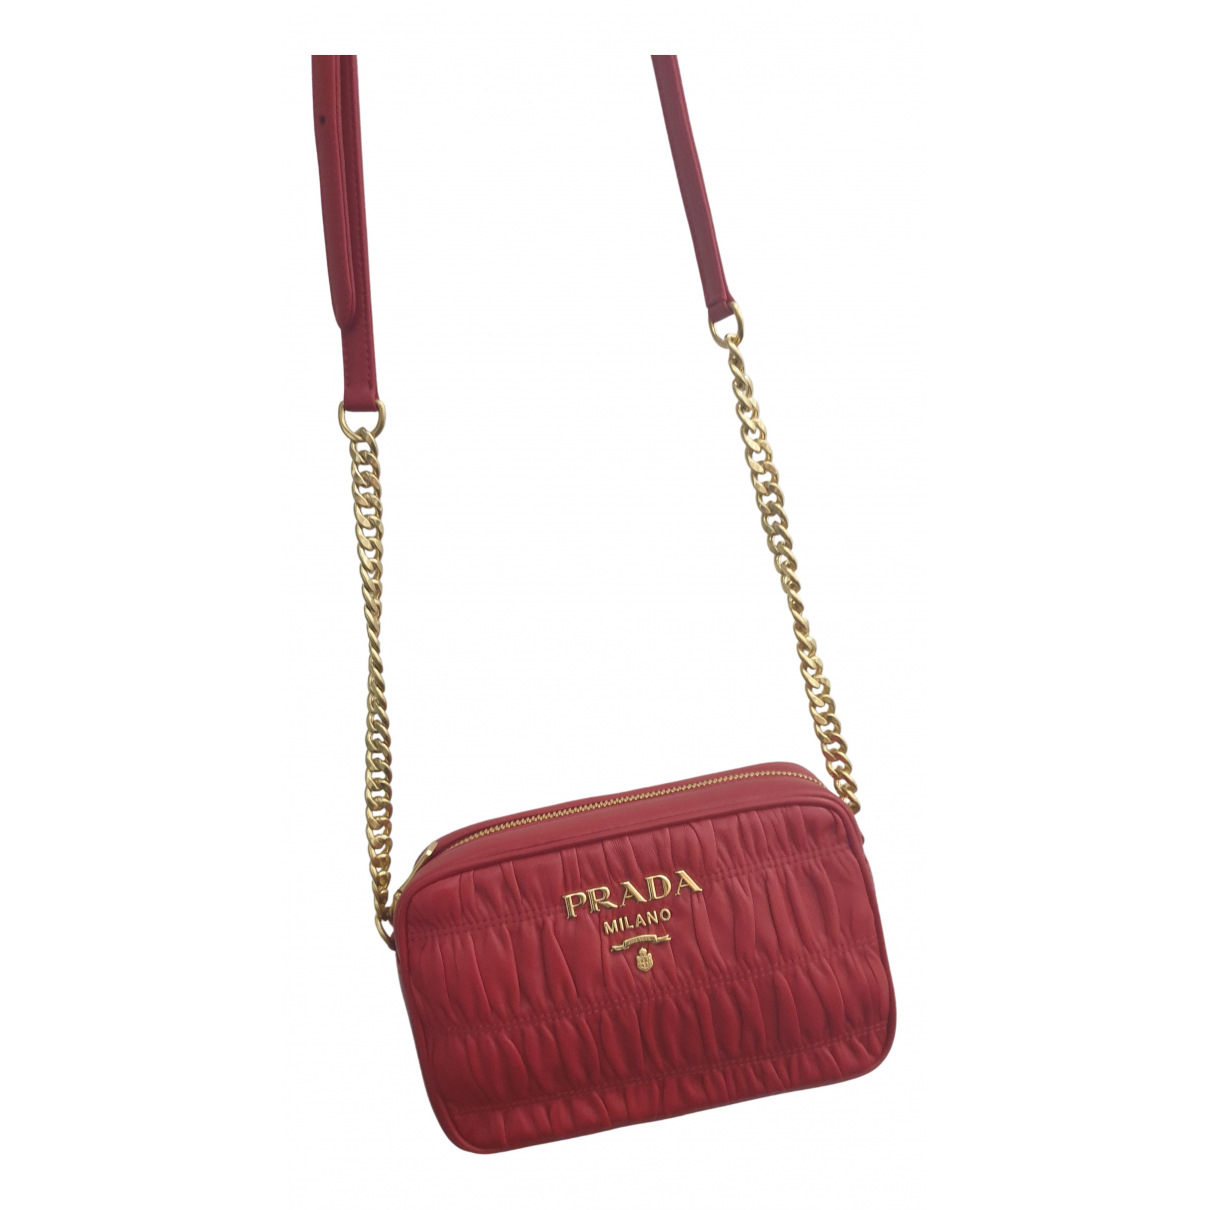 Prada N Red Leather handbag for Women N